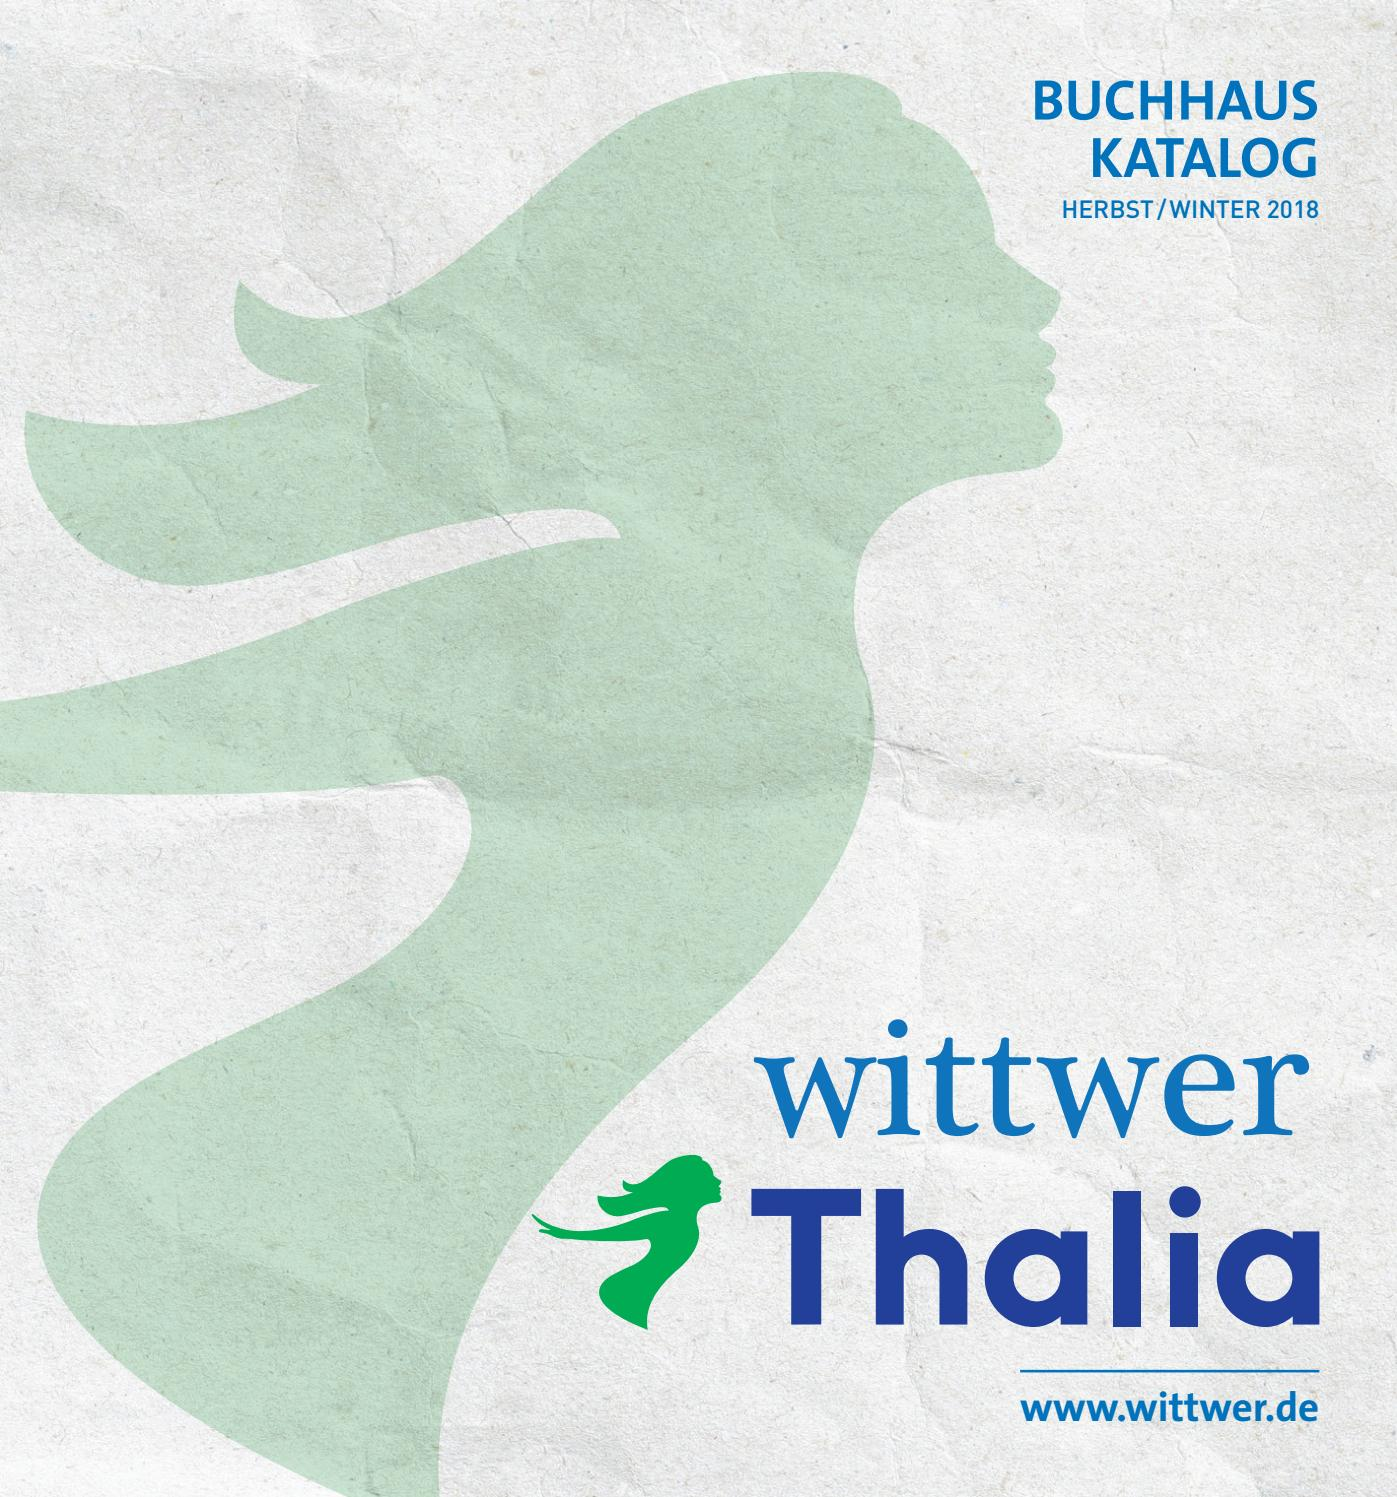 Wittwer Thalia Buchhauskatalog Herbst Winter 2018 2019 By